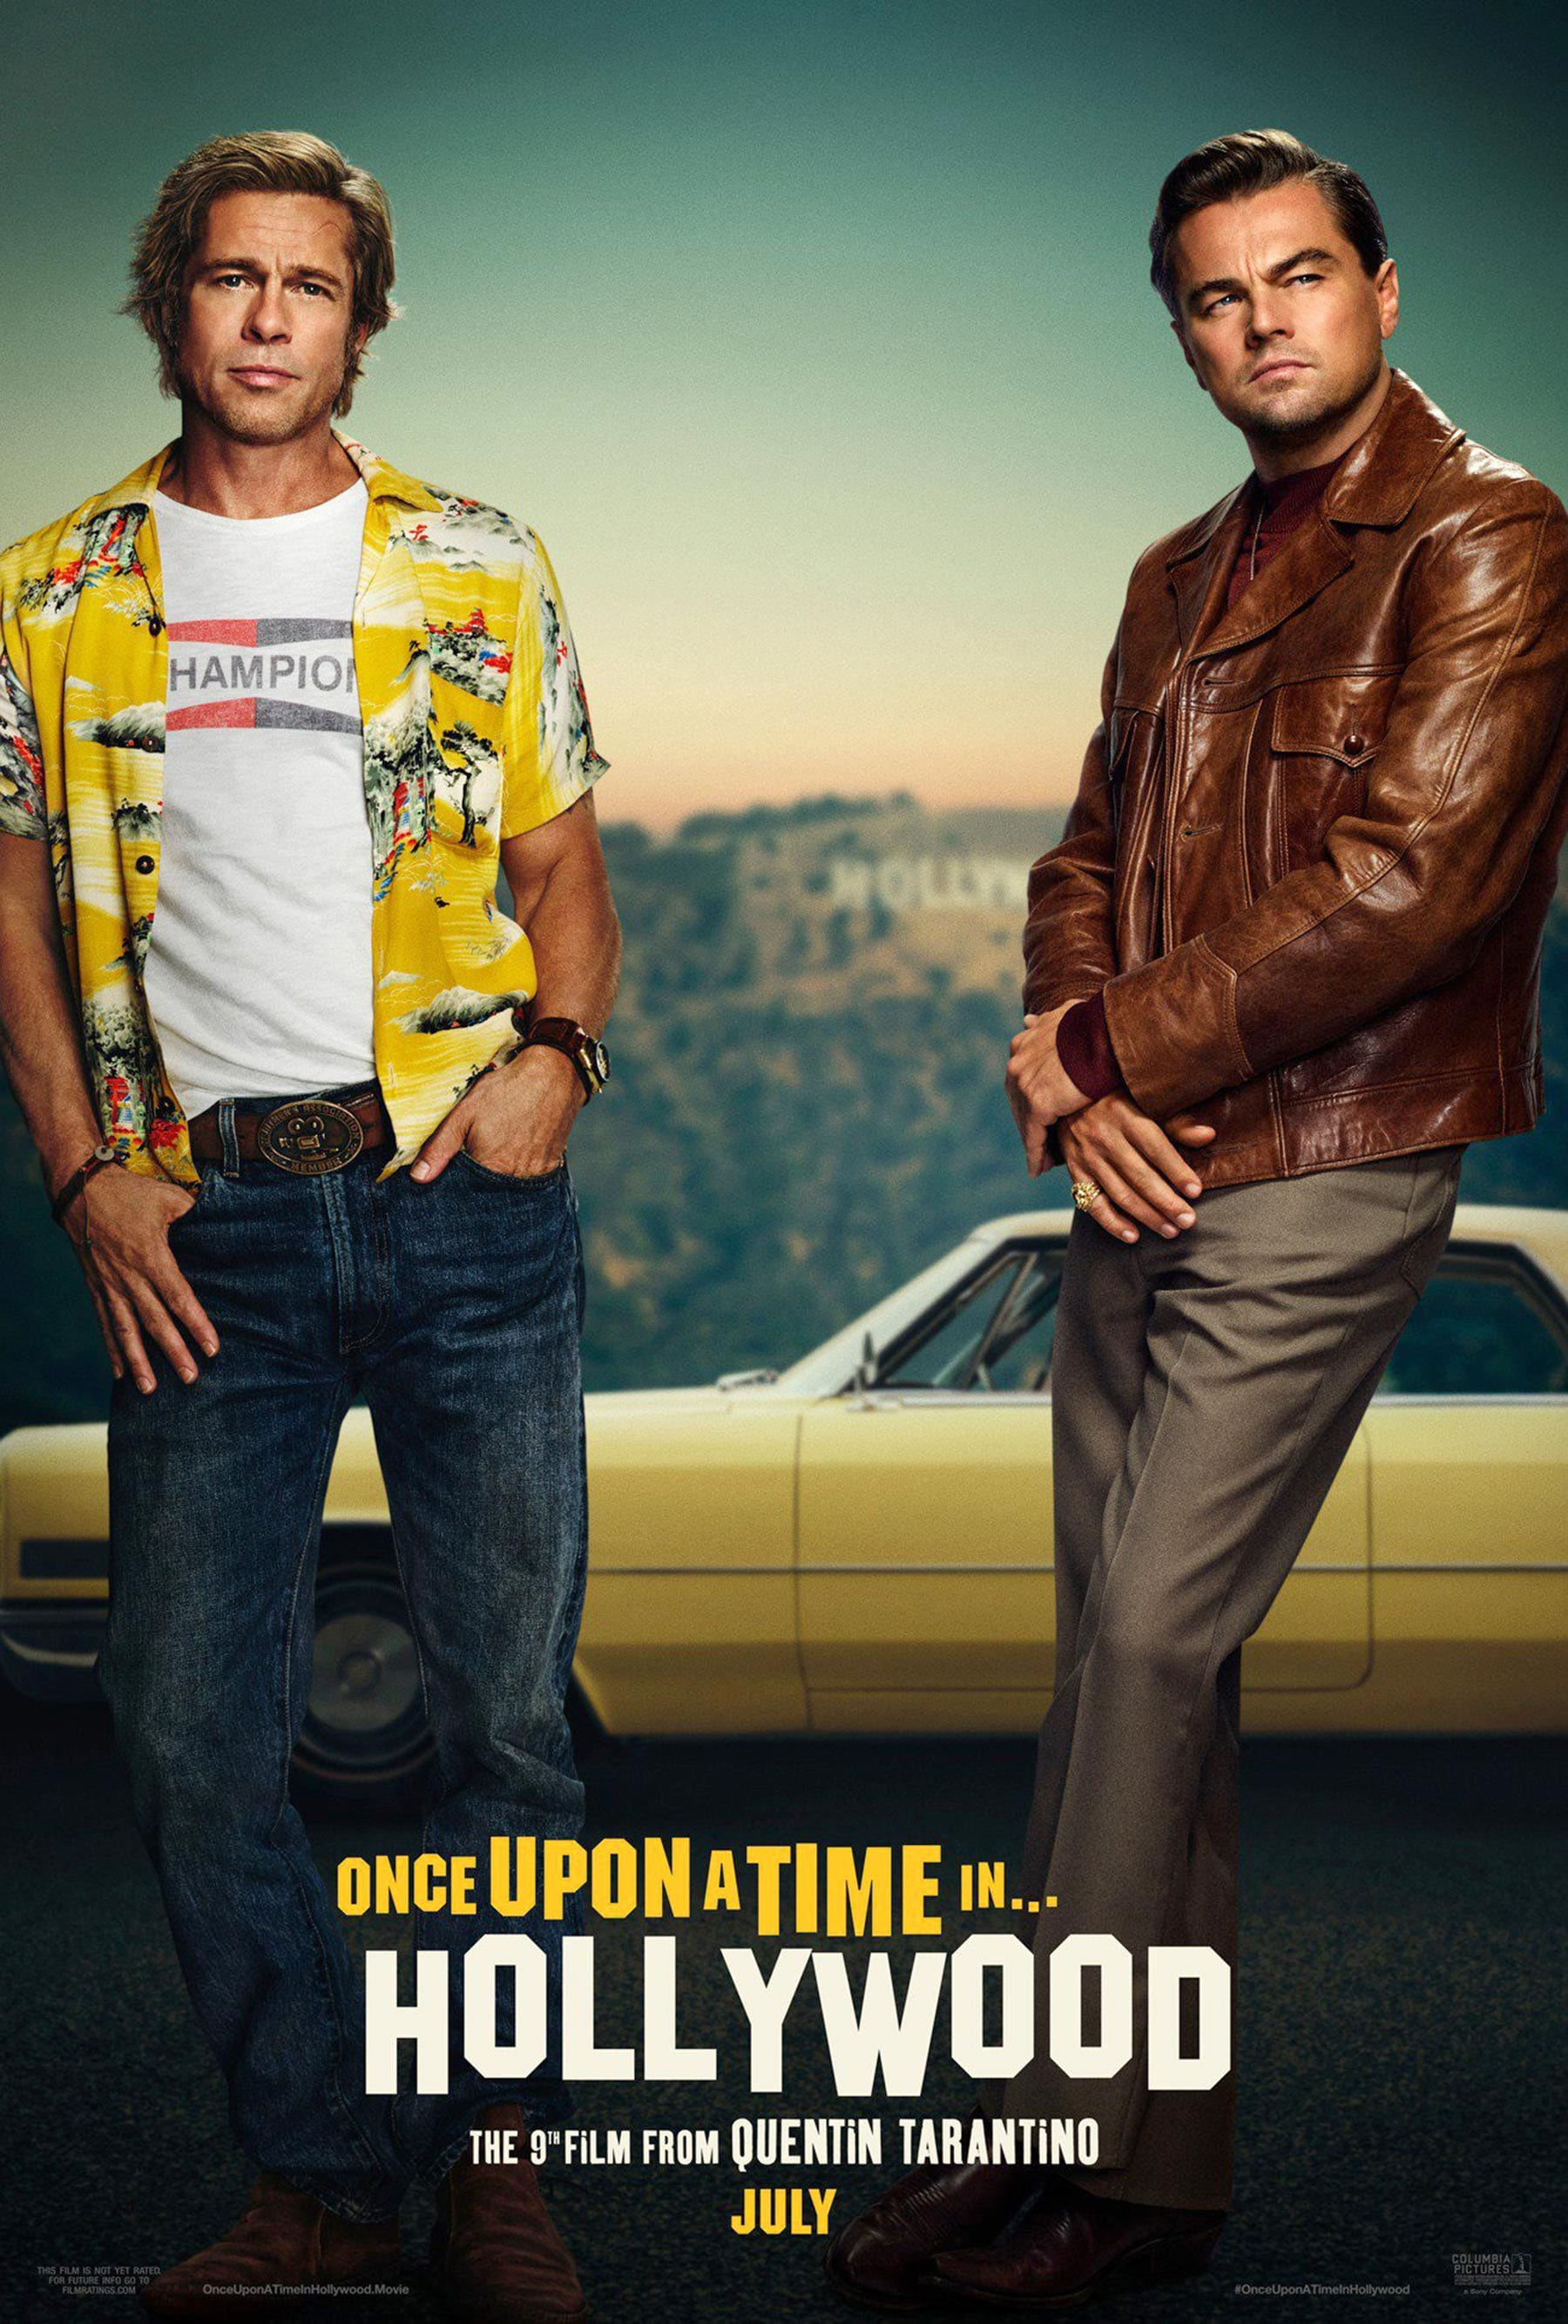 1558694520115_ONCE UPON A TIME IN HOLLYWOOD 2019.jpg - Locandina originale di C'era una volta a Hollywood 2019